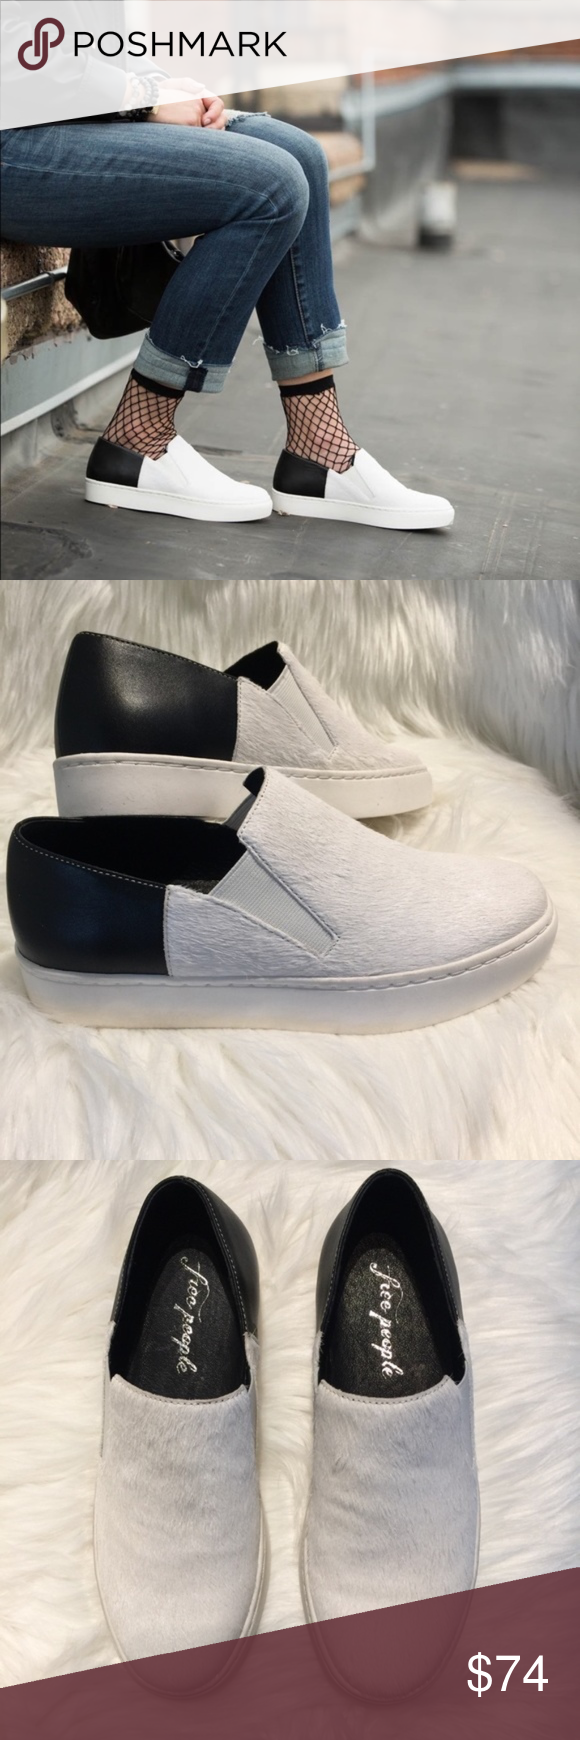 13880b48dd9f ... NIB Sizing  Round toe - Genuine calf hair-Slip-on - Padded tongue and  collar for comfort - Grip sole for traction - Imported Free People Shoes  Sneakers